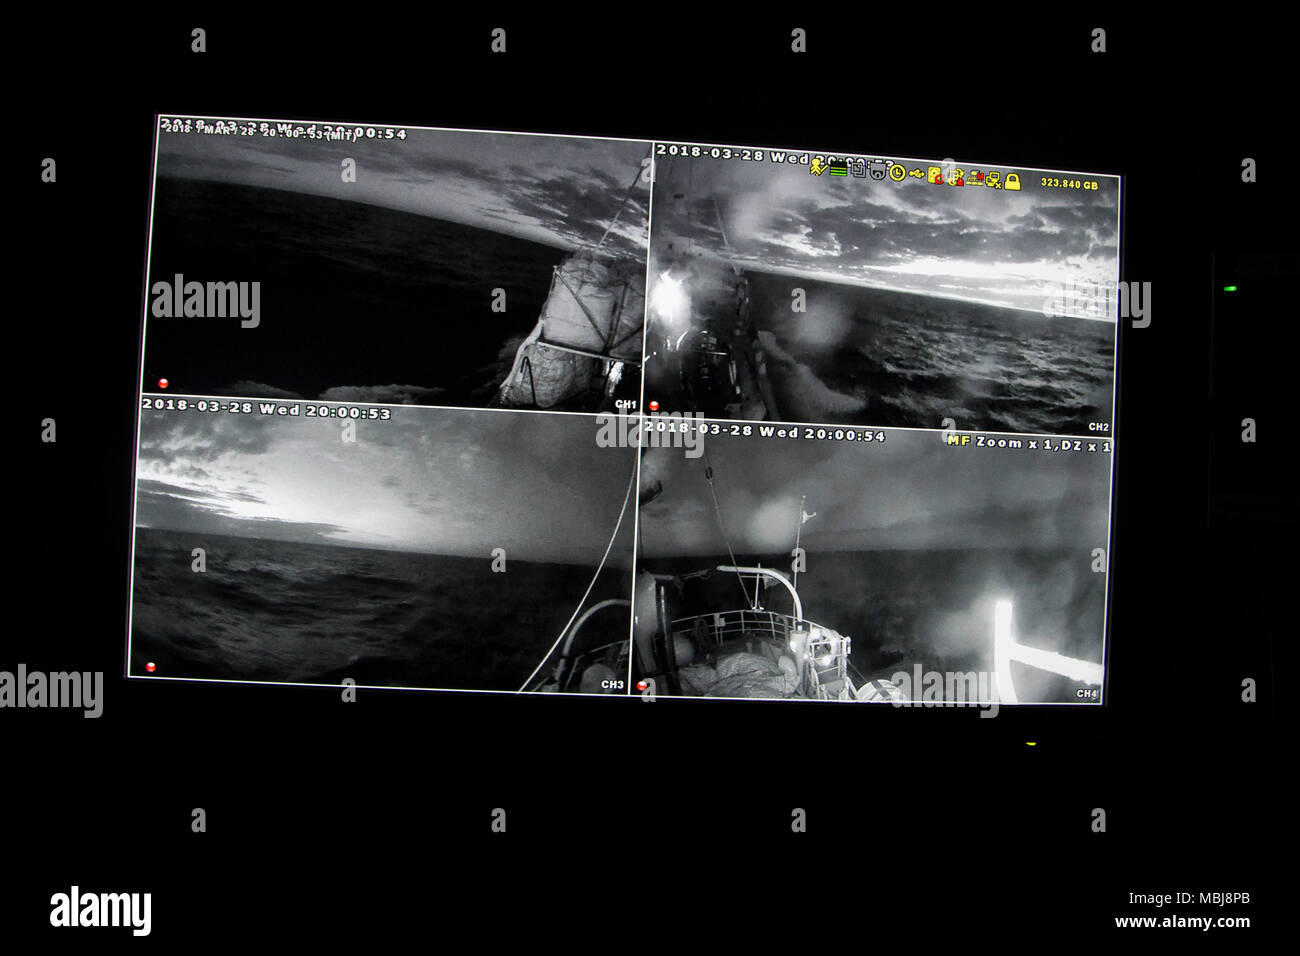 The images recorded around the boat by the security cameras